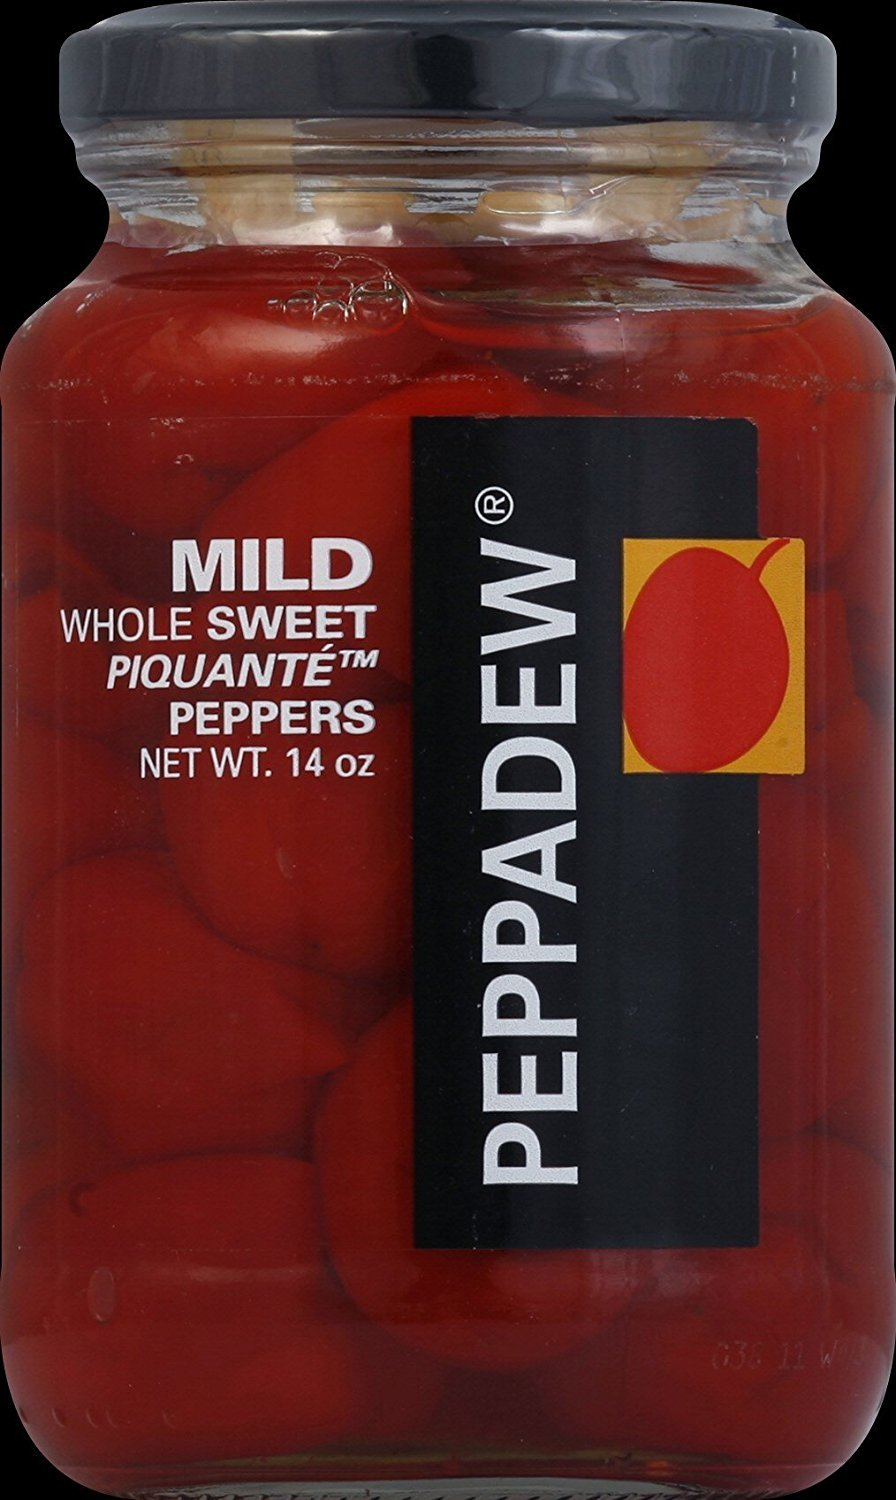 Peppadew Mild Whole Sweet Piquante Peppers, 14-Ounce Glass Jars (Pack of 6) by PEPPADEW (Image #1)